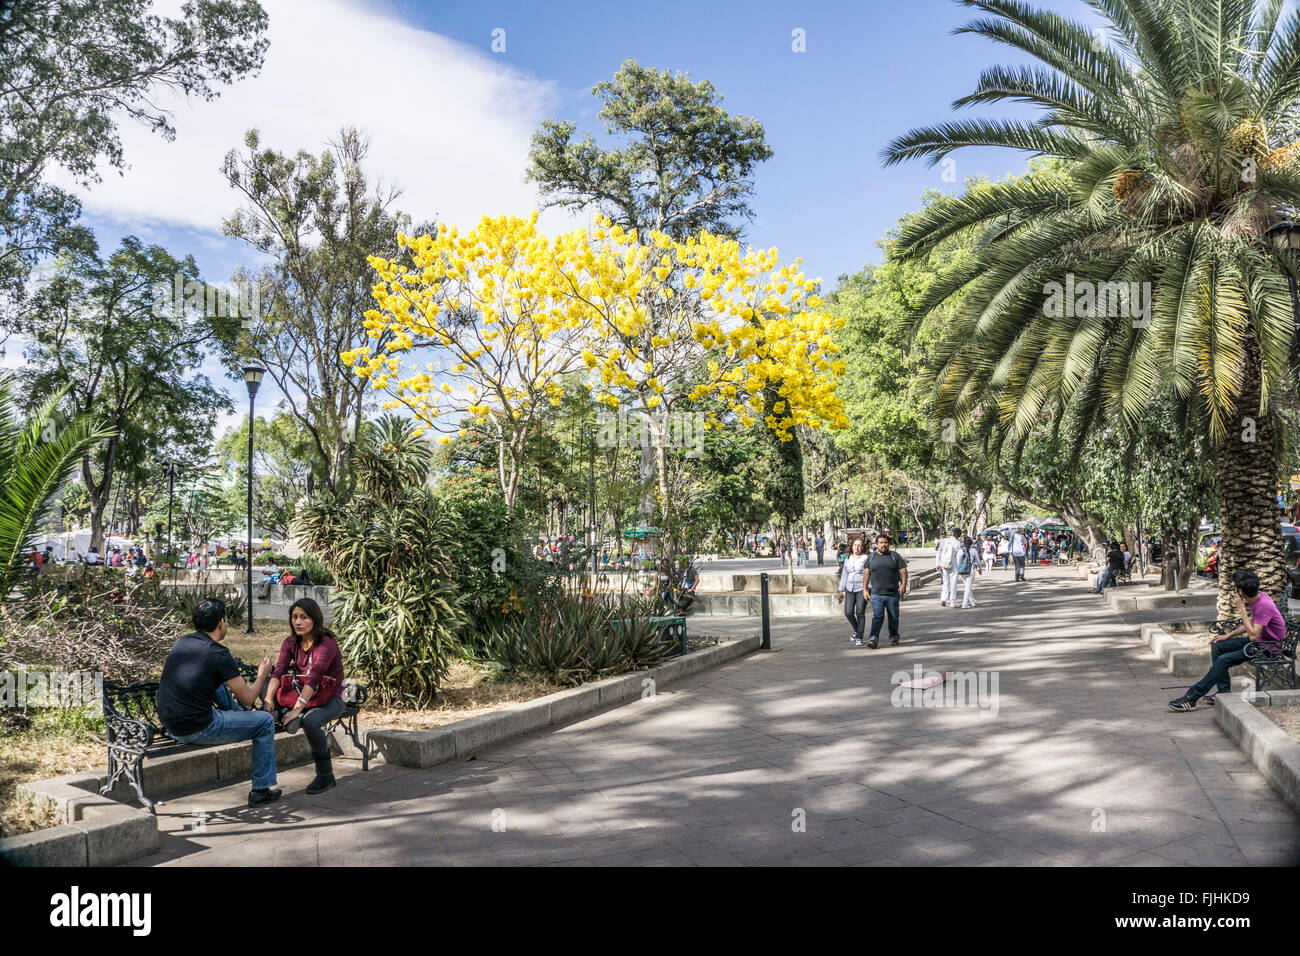 joyous spring scene Llano park Oaxaca with bright yellow blooming Acacia trees & couples strolling sitting in - Stock Image